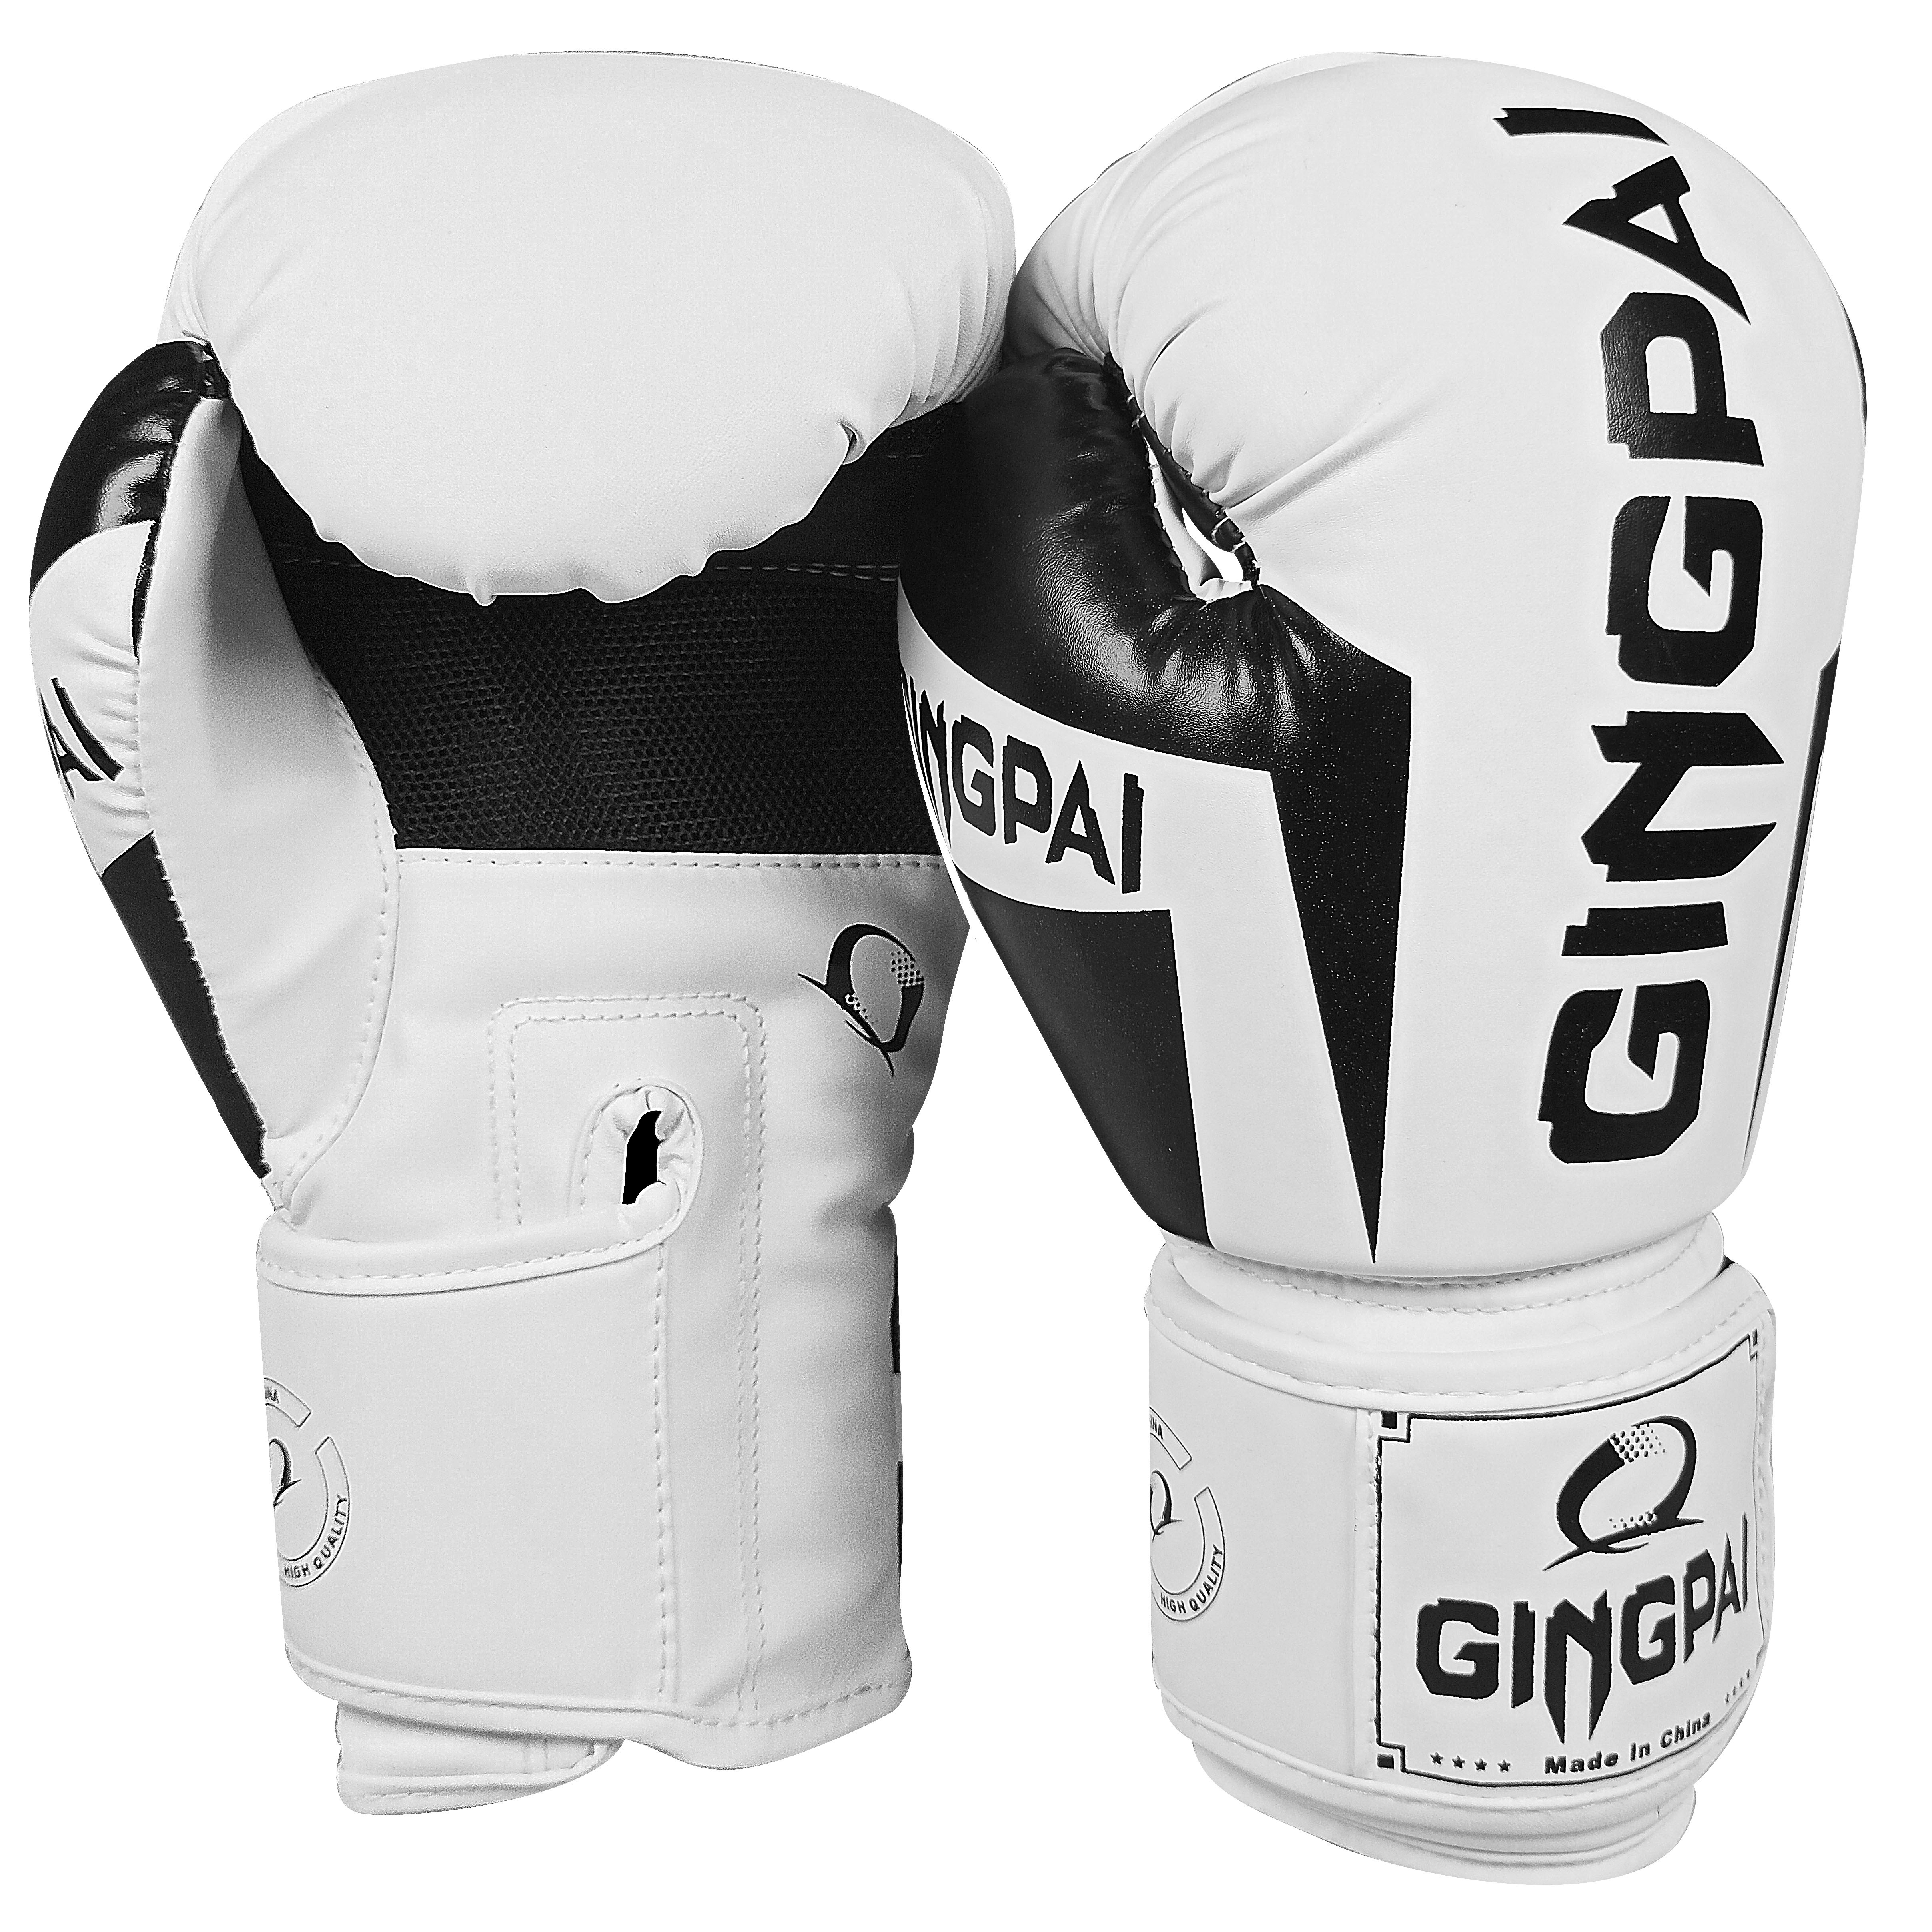 punching bag Black training martial arts thin and effective padding sandbag grappling MMA Gloves Professional by Martial boxing Boxing Gloves freefight